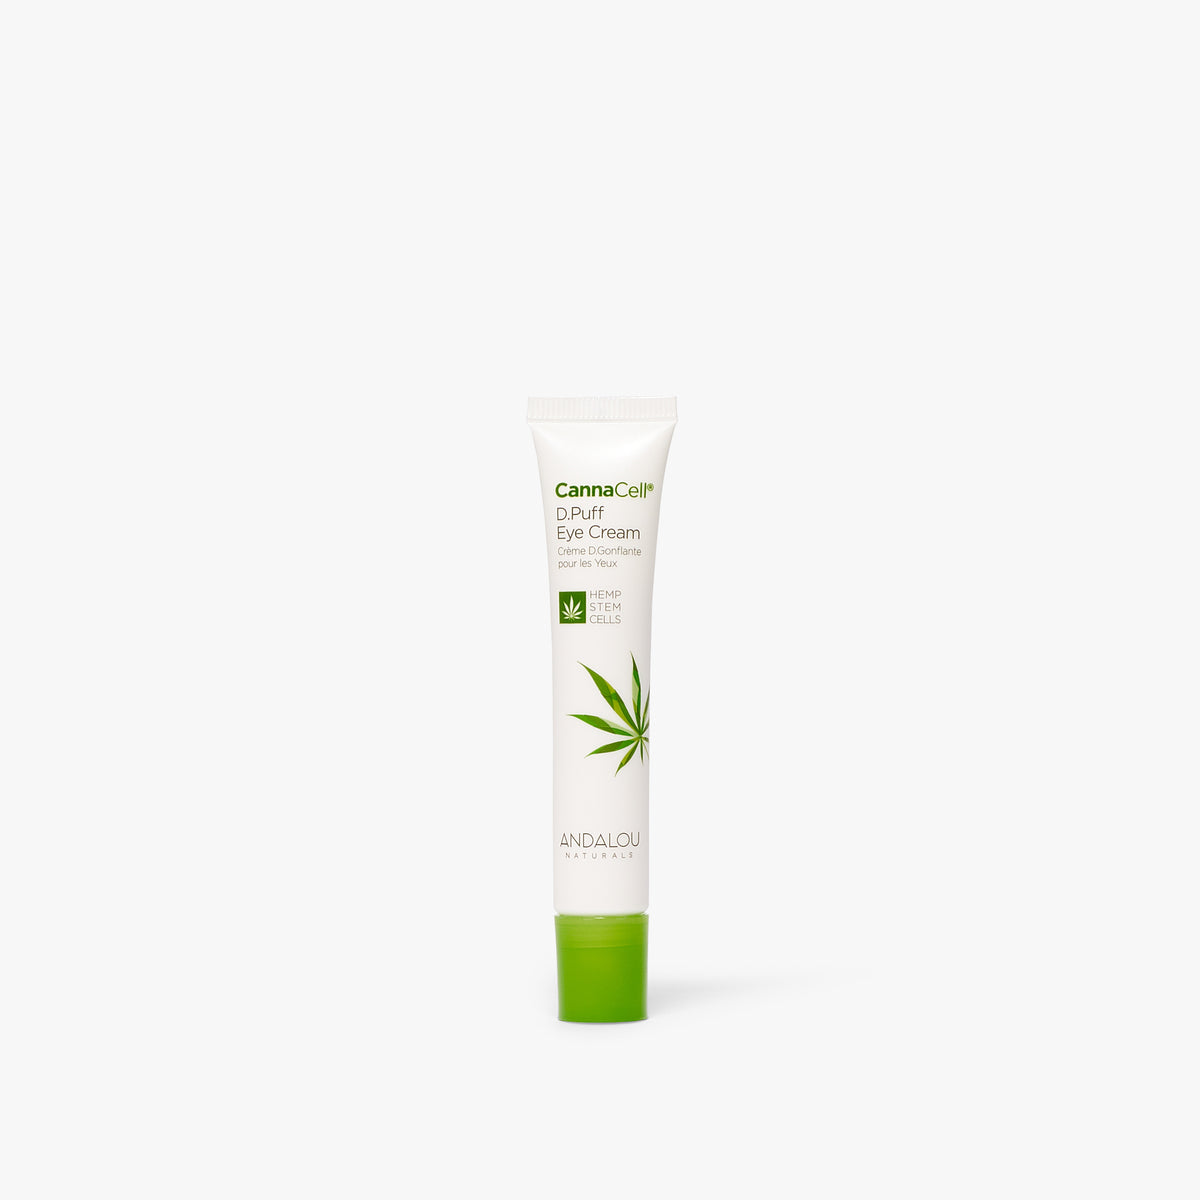 CannaCell D.Puff Eye Cream